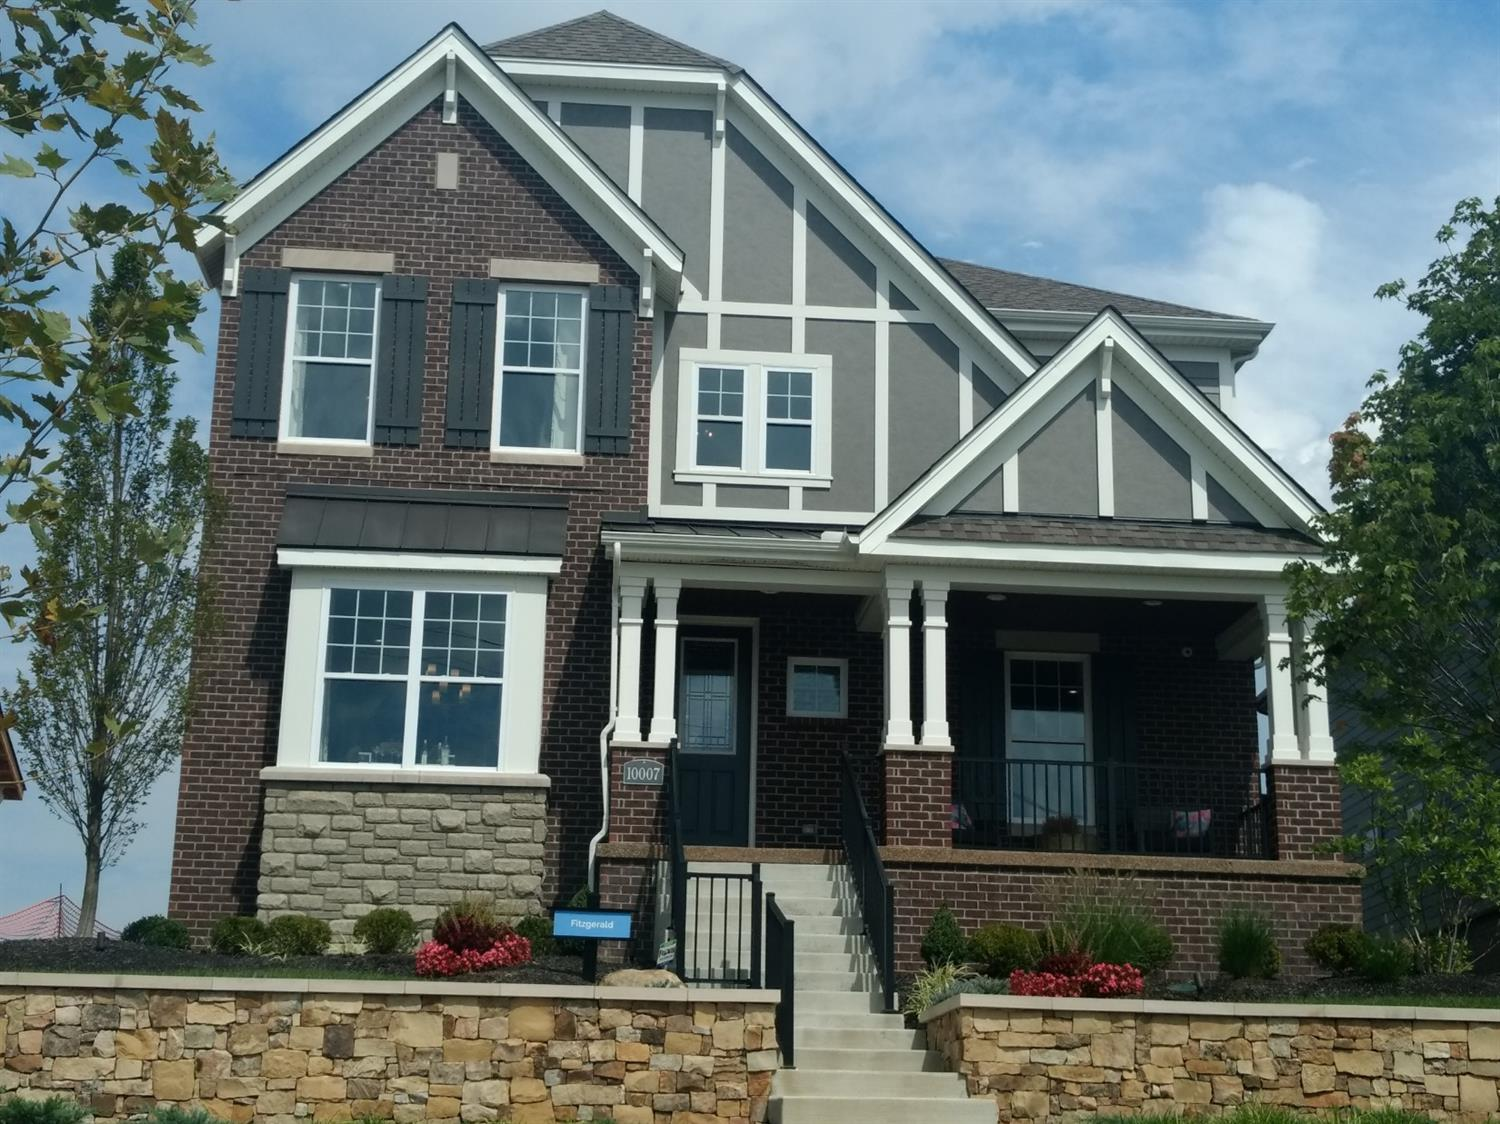 10007 Cornell Aly, 103 Blue Ash, OH